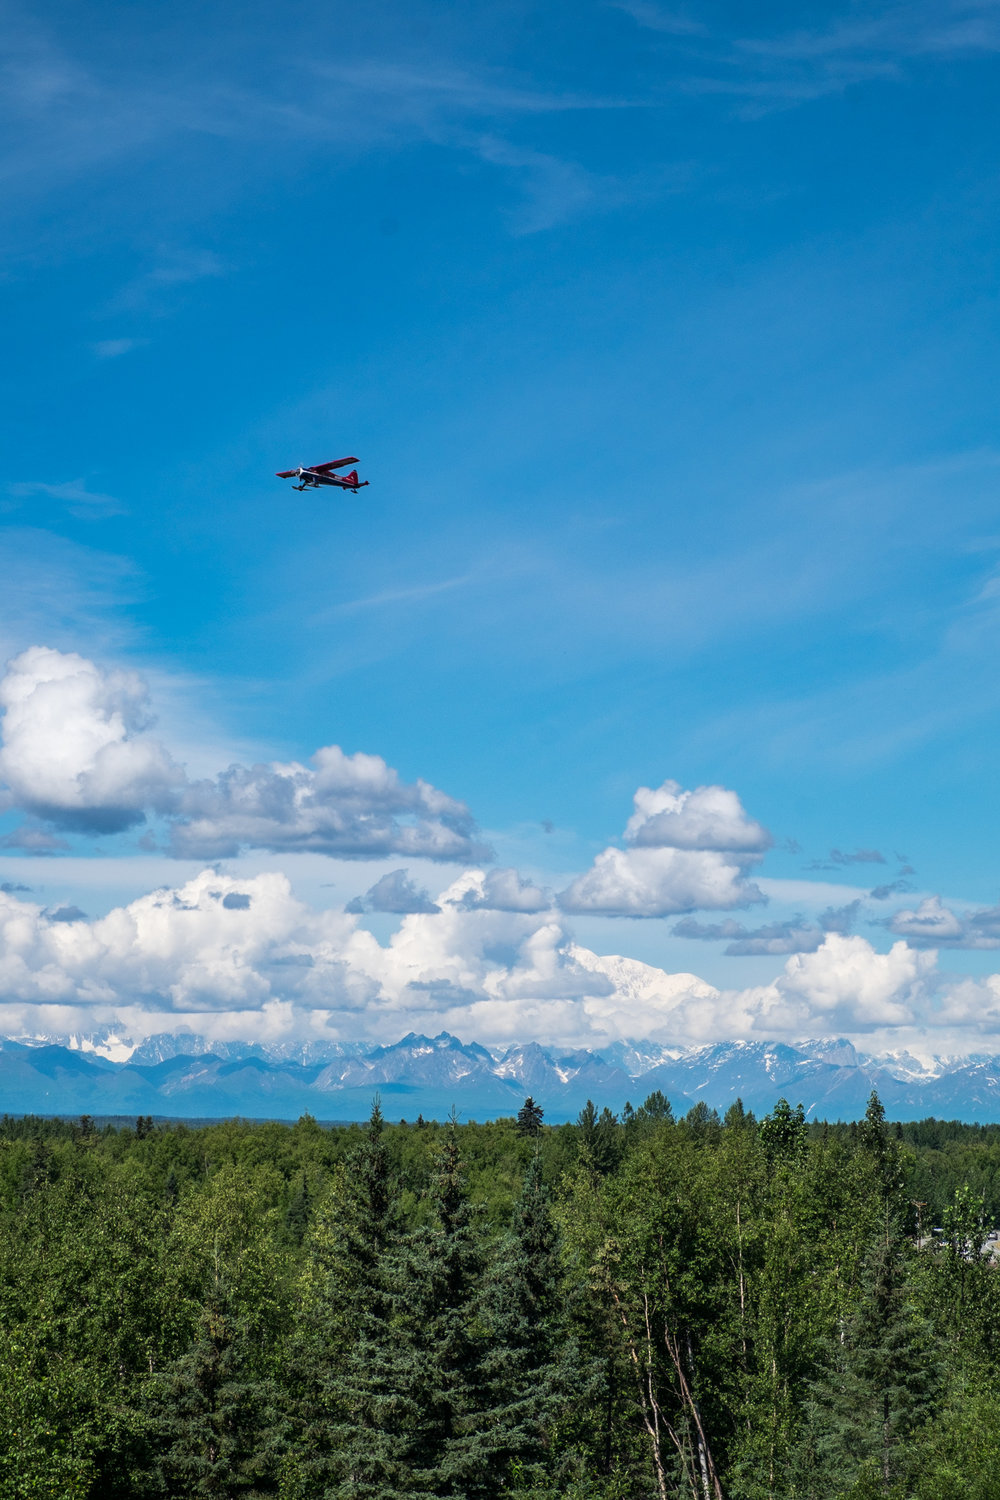 To engage in a comprehensive look at the breadth of Denali's 6-million acre landscape, hop on a bush plane and enjoy a flightseeing tour!